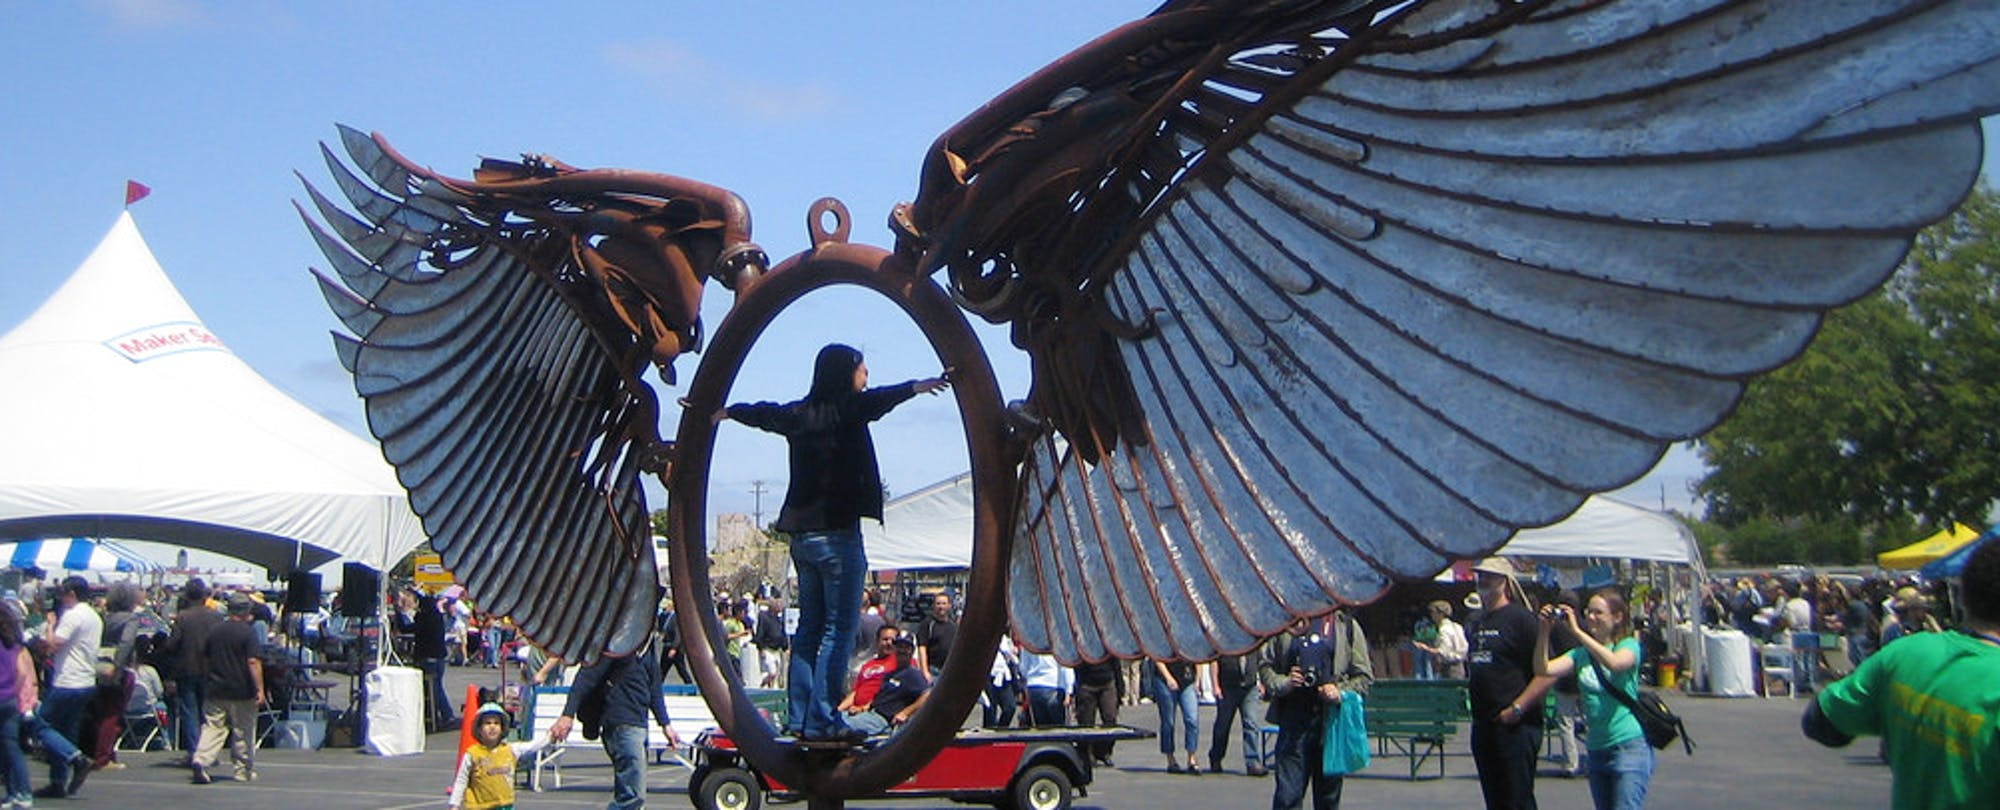 What to Look Out For at Maker Faire and National Week of Making